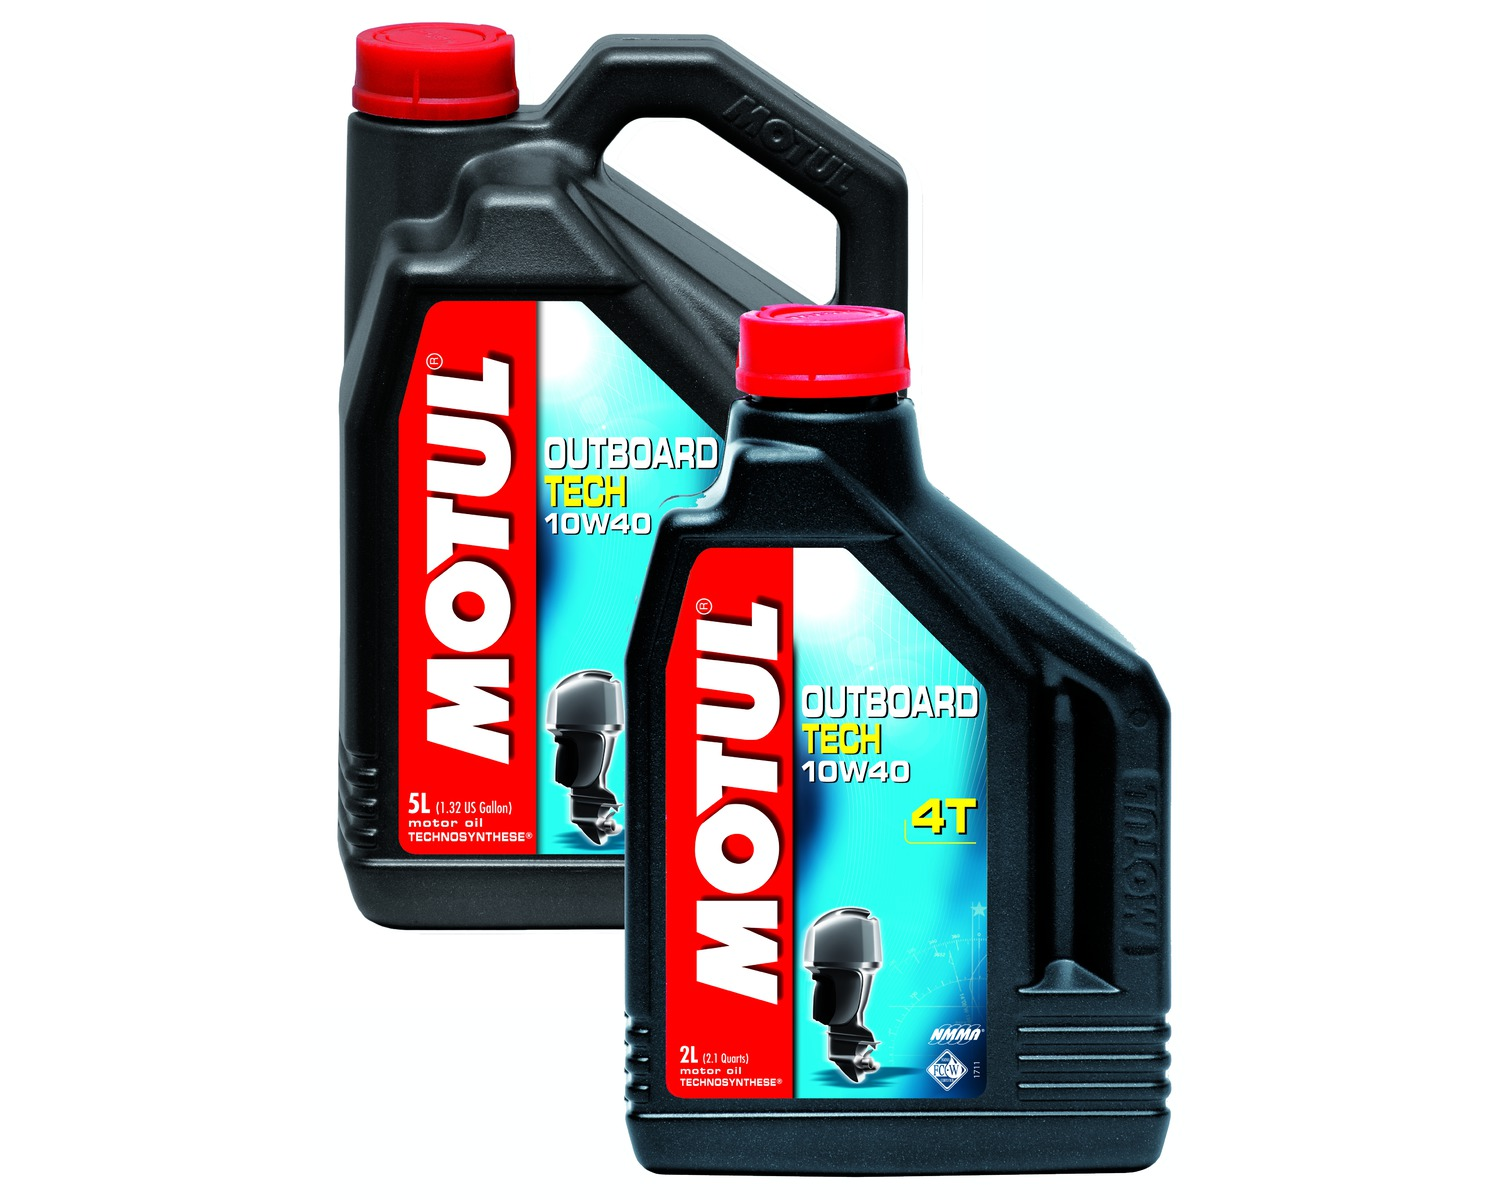 motul huile hors bord semi synth se moteur 4 temps 10w40. Black Bedroom Furniture Sets. Home Design Ideas